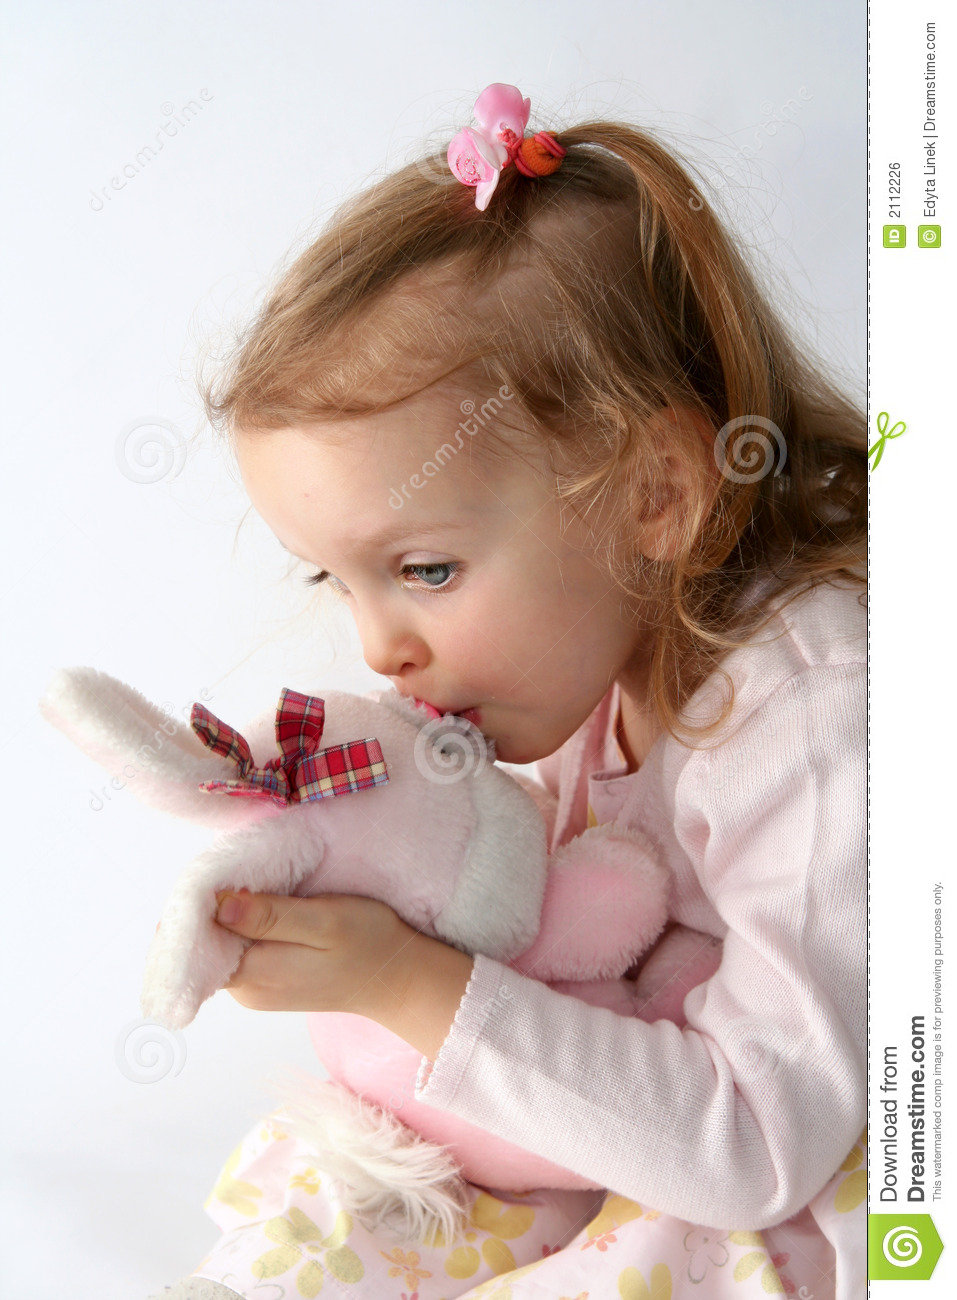 Cute Small Baby Girl Wallpapers Baby Girl And Pink Bunny Stock Photo Image Of Portrait